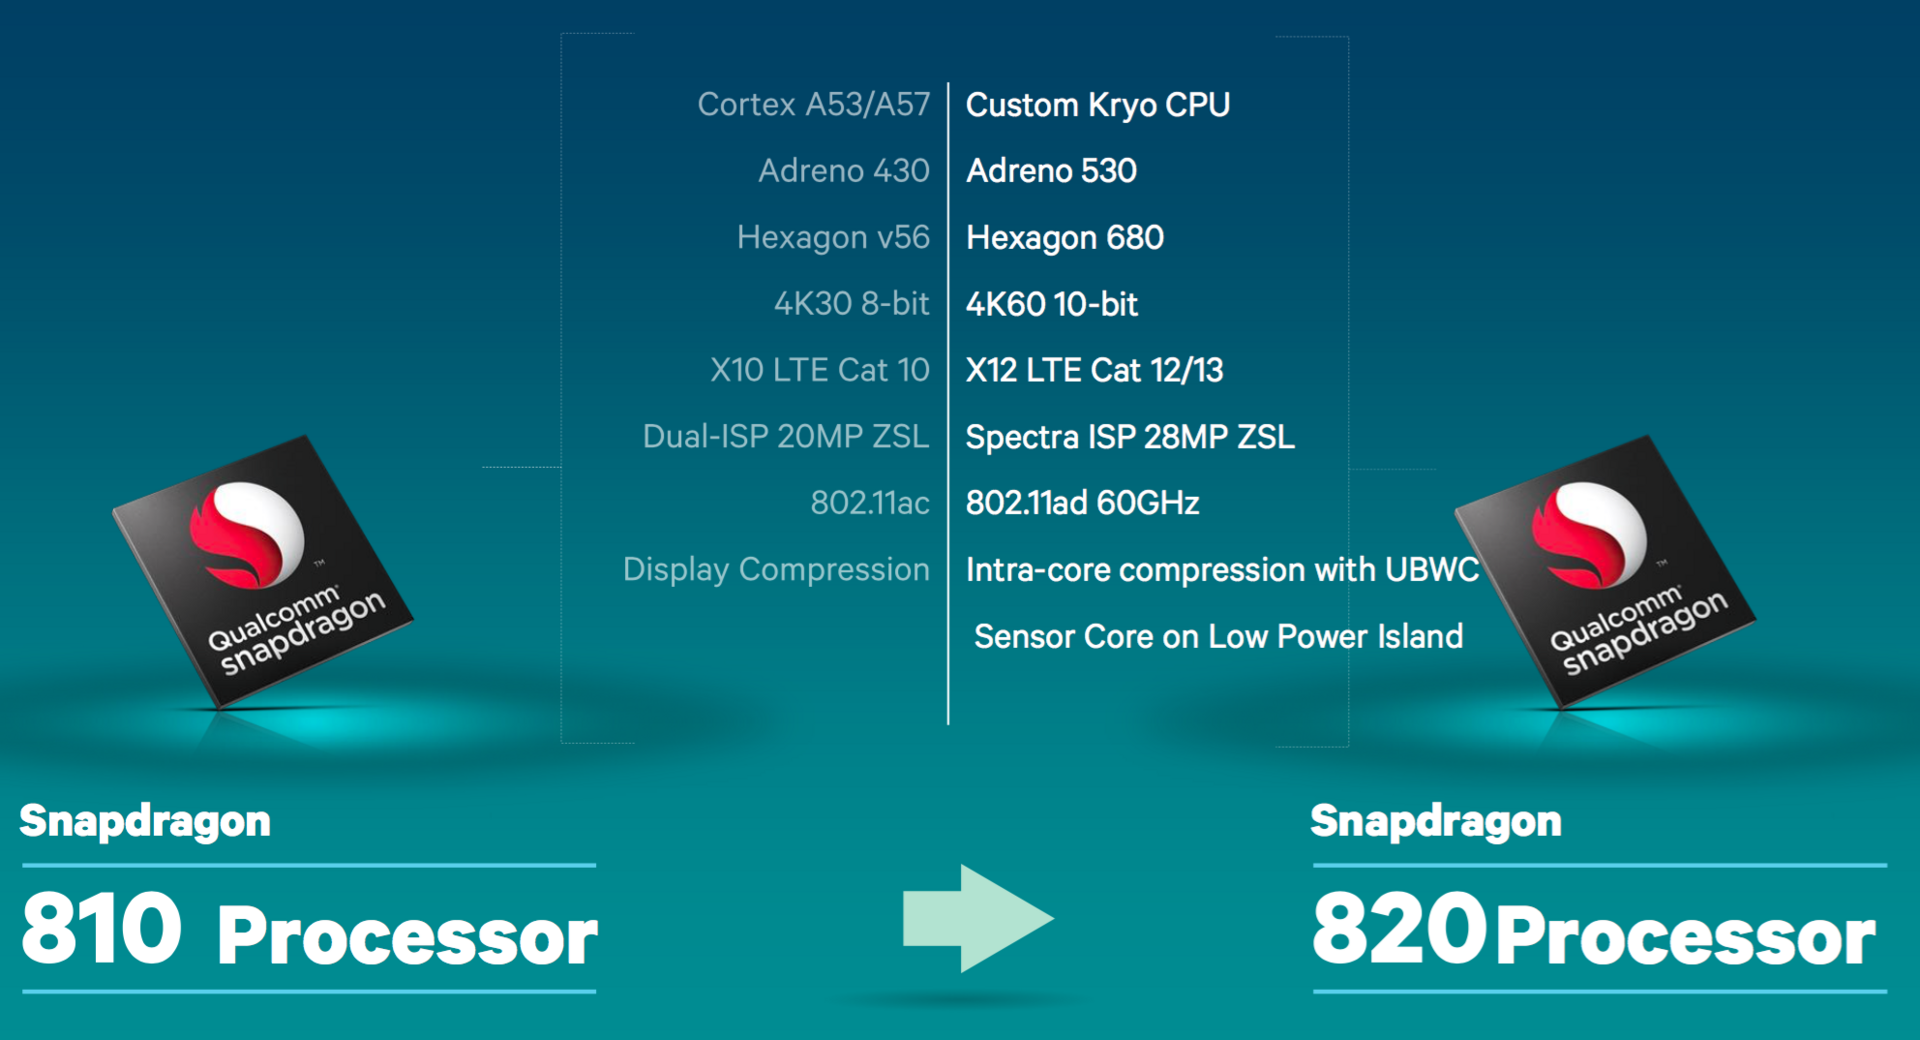 Qualcomm Snapdragon 636 vs Qualcomm Snapdragon 820 MSM8996